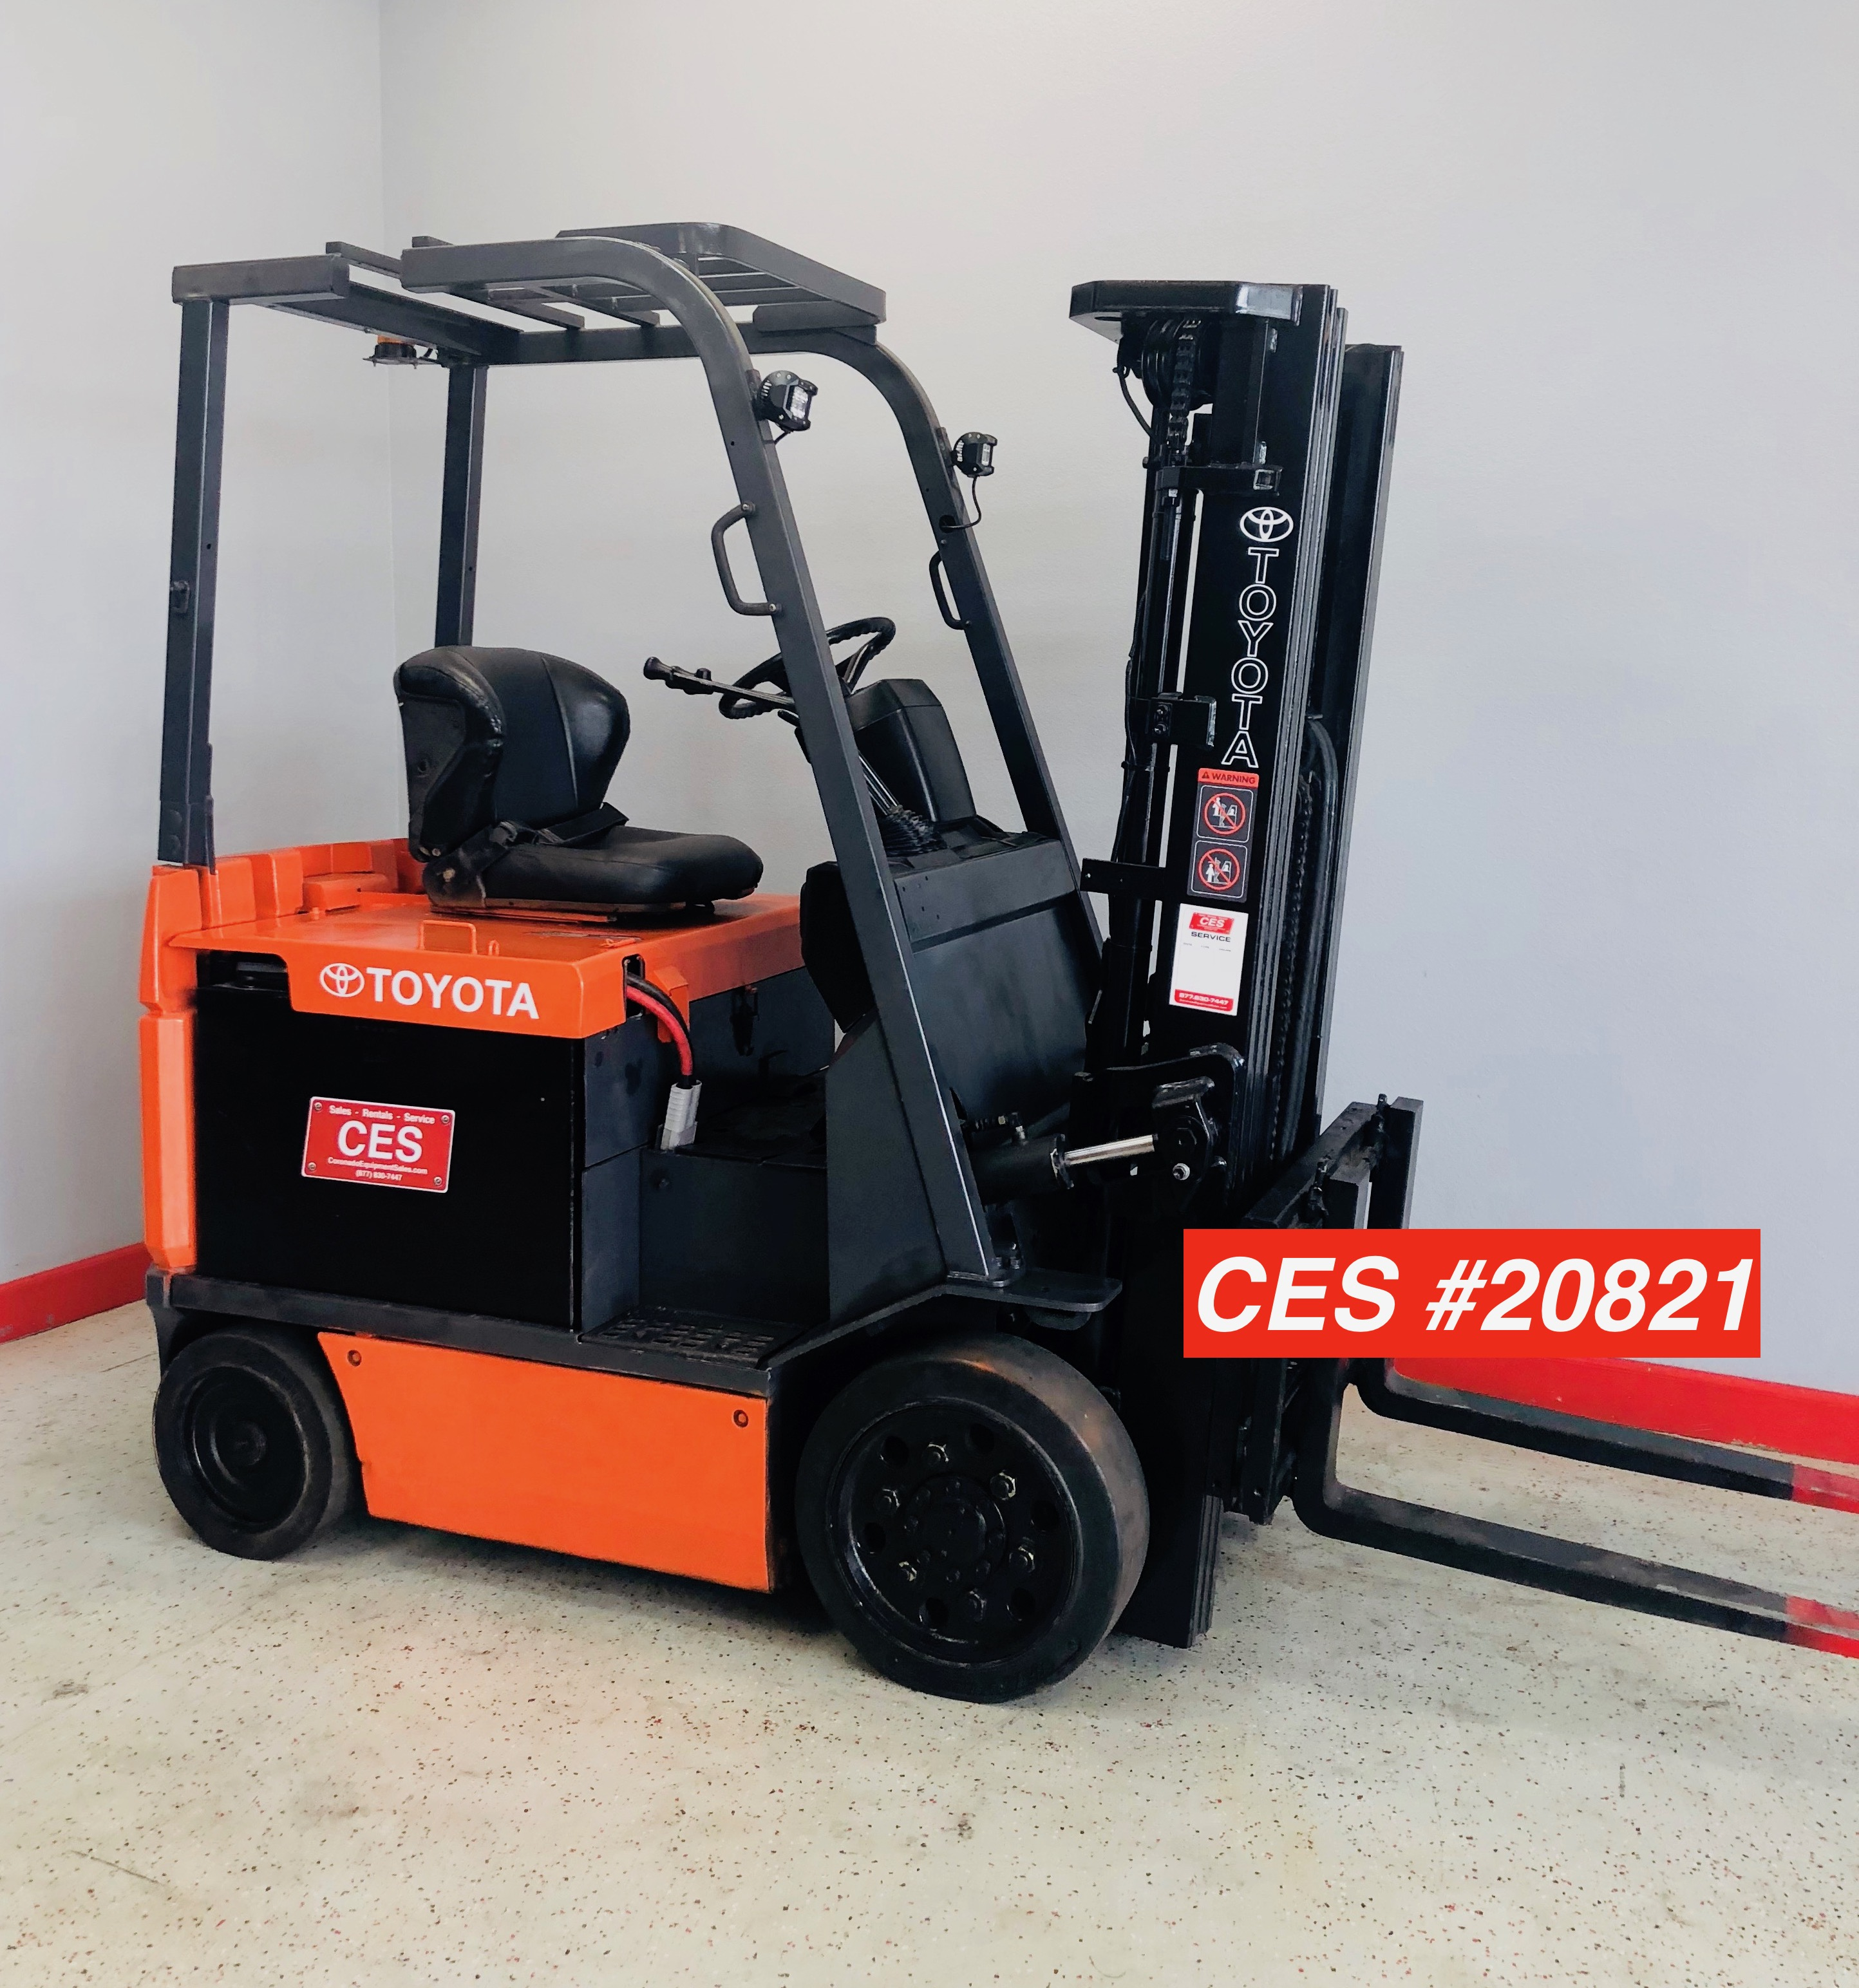 Used Toyota Under 5000: CES #20821 Toyota 7FBCU25 Electric Forklift